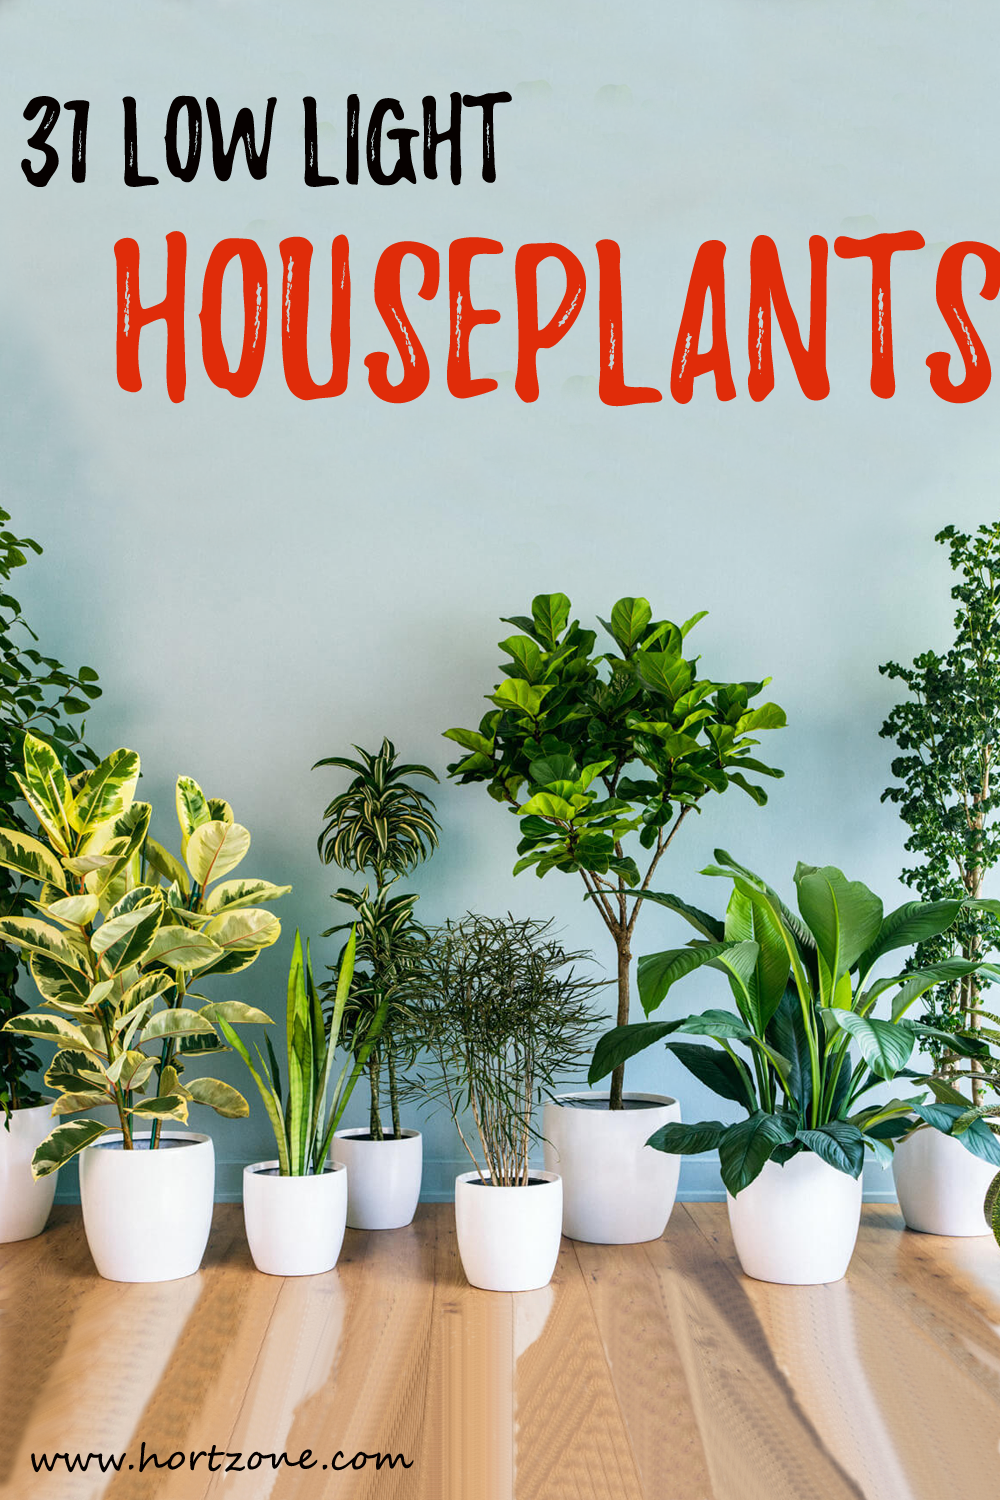 31 Low Light Houseplants For Indoor Garden Houseplants Low Light Low Light House Plants Indoor Plants Low Light